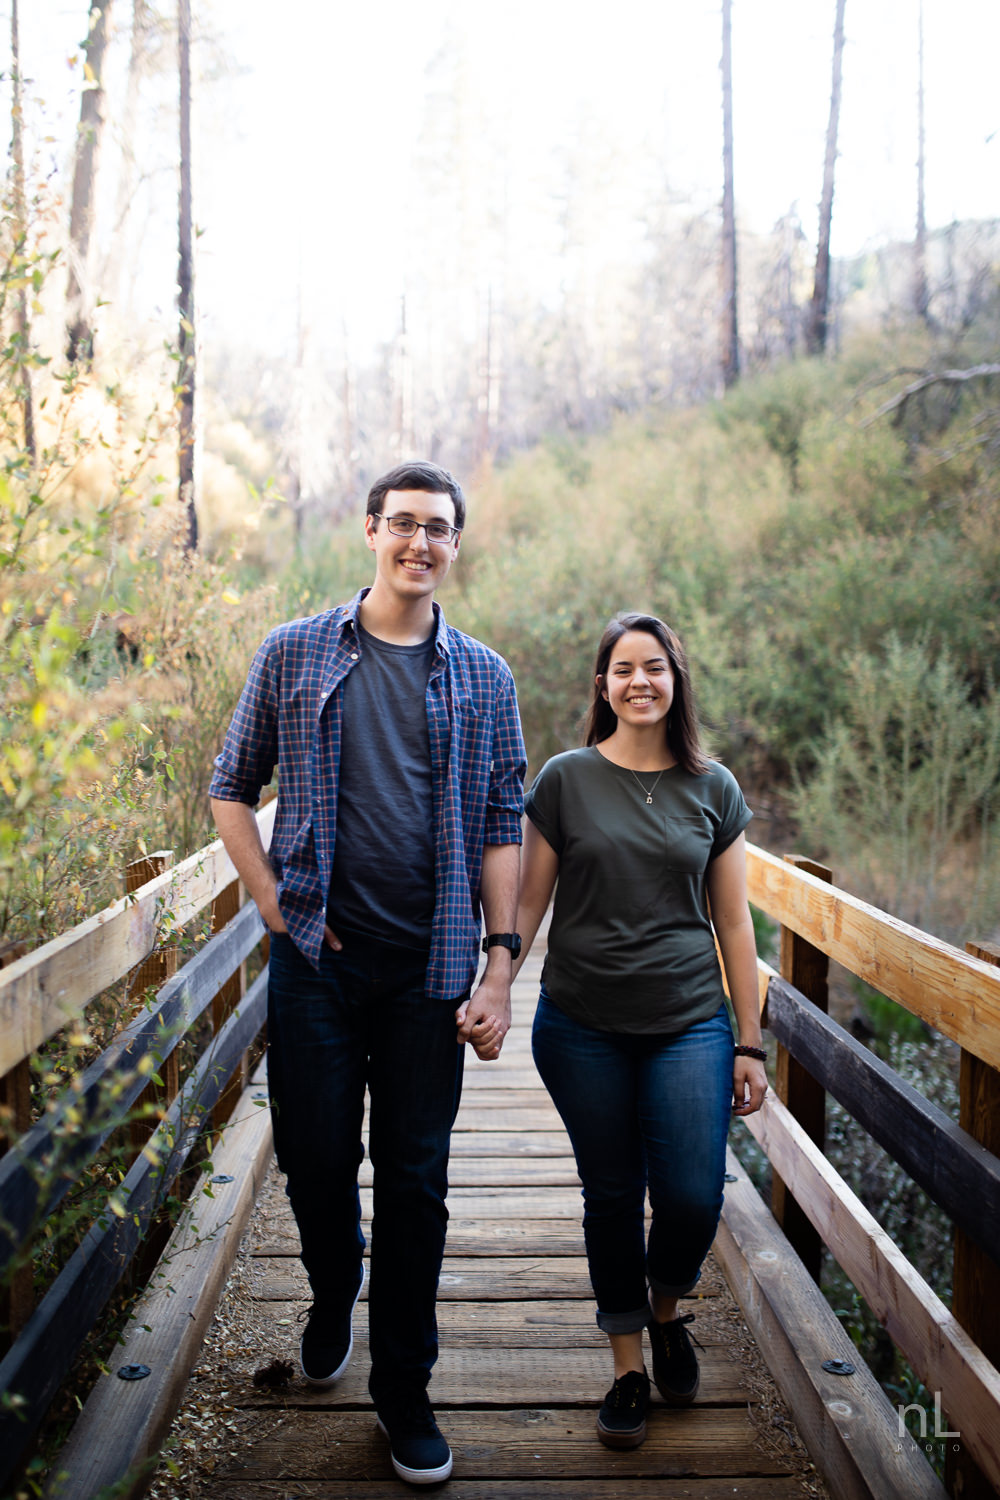 los-angeles-national-forest-engagement-photography-trees-couple-walking-on-bridge-stream